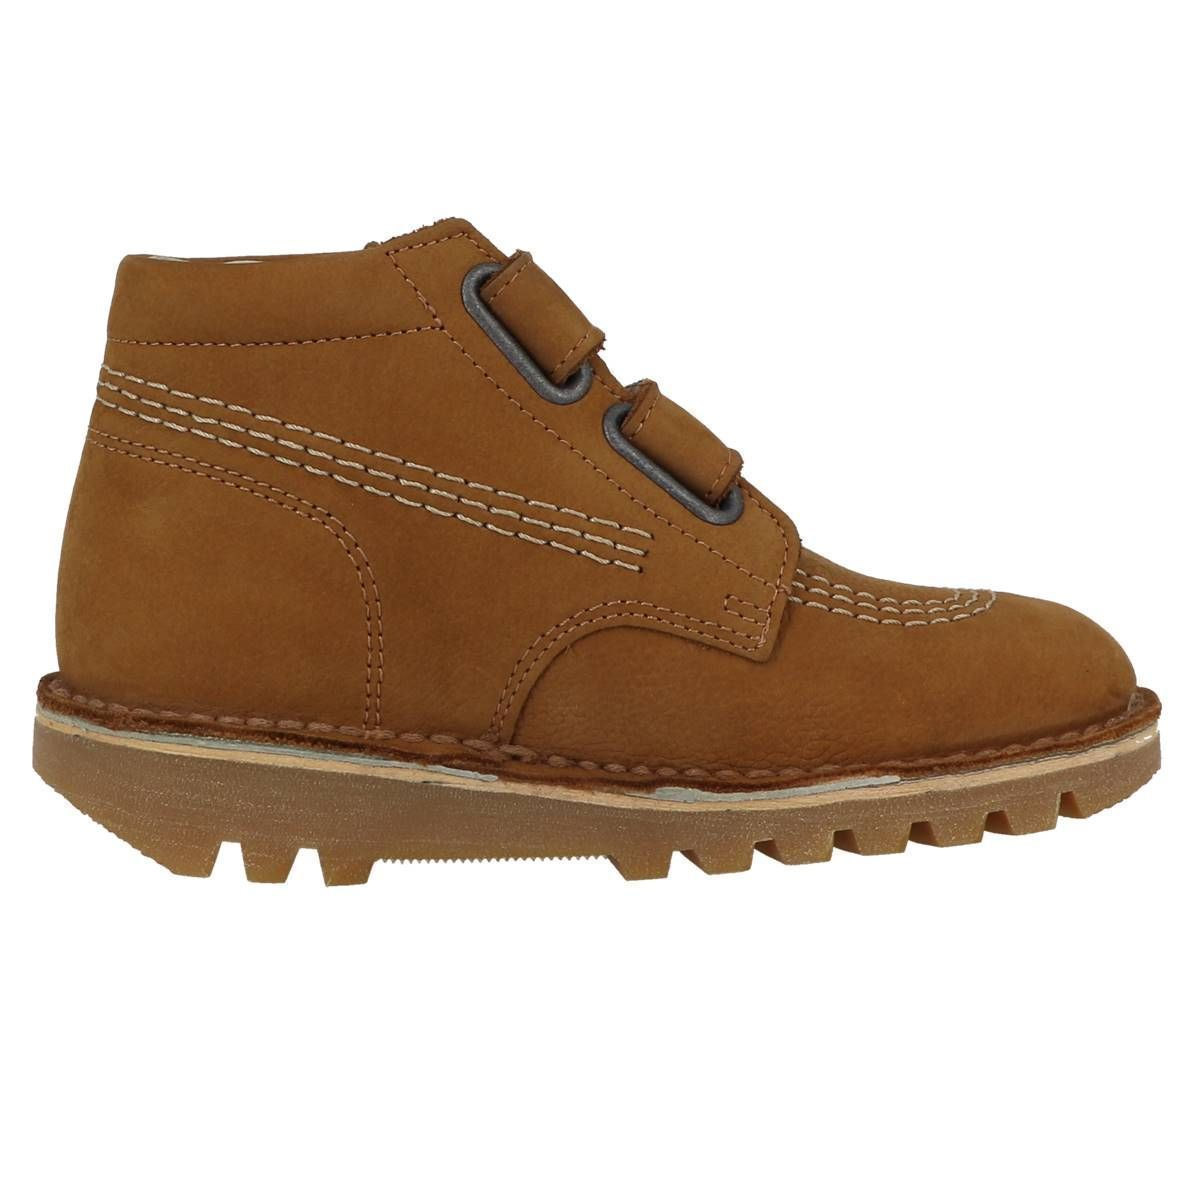 Kickers fille neovelcro camel